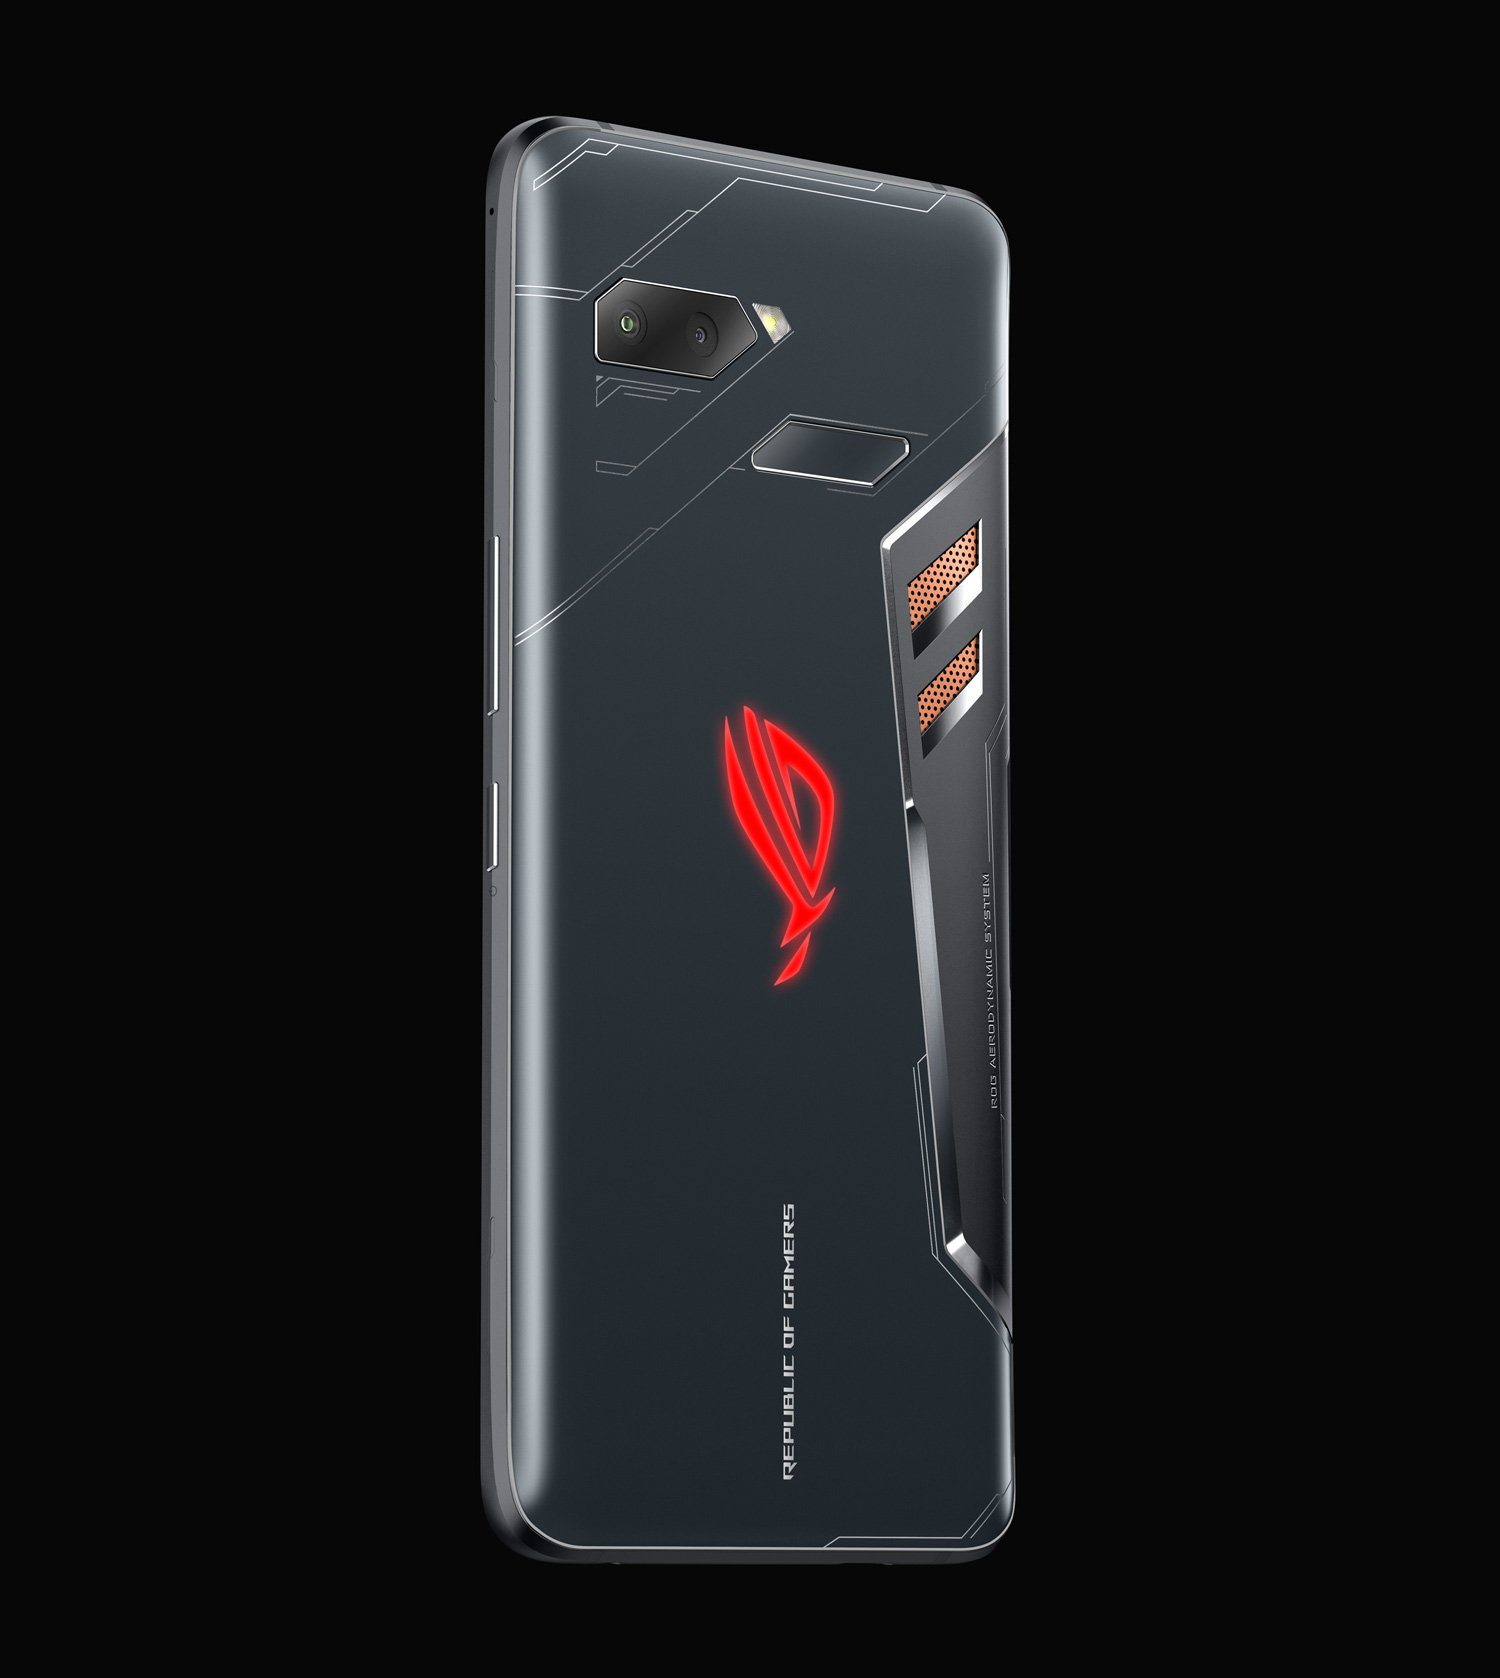 ASUS Republic of Gamers Announces ROG Phone